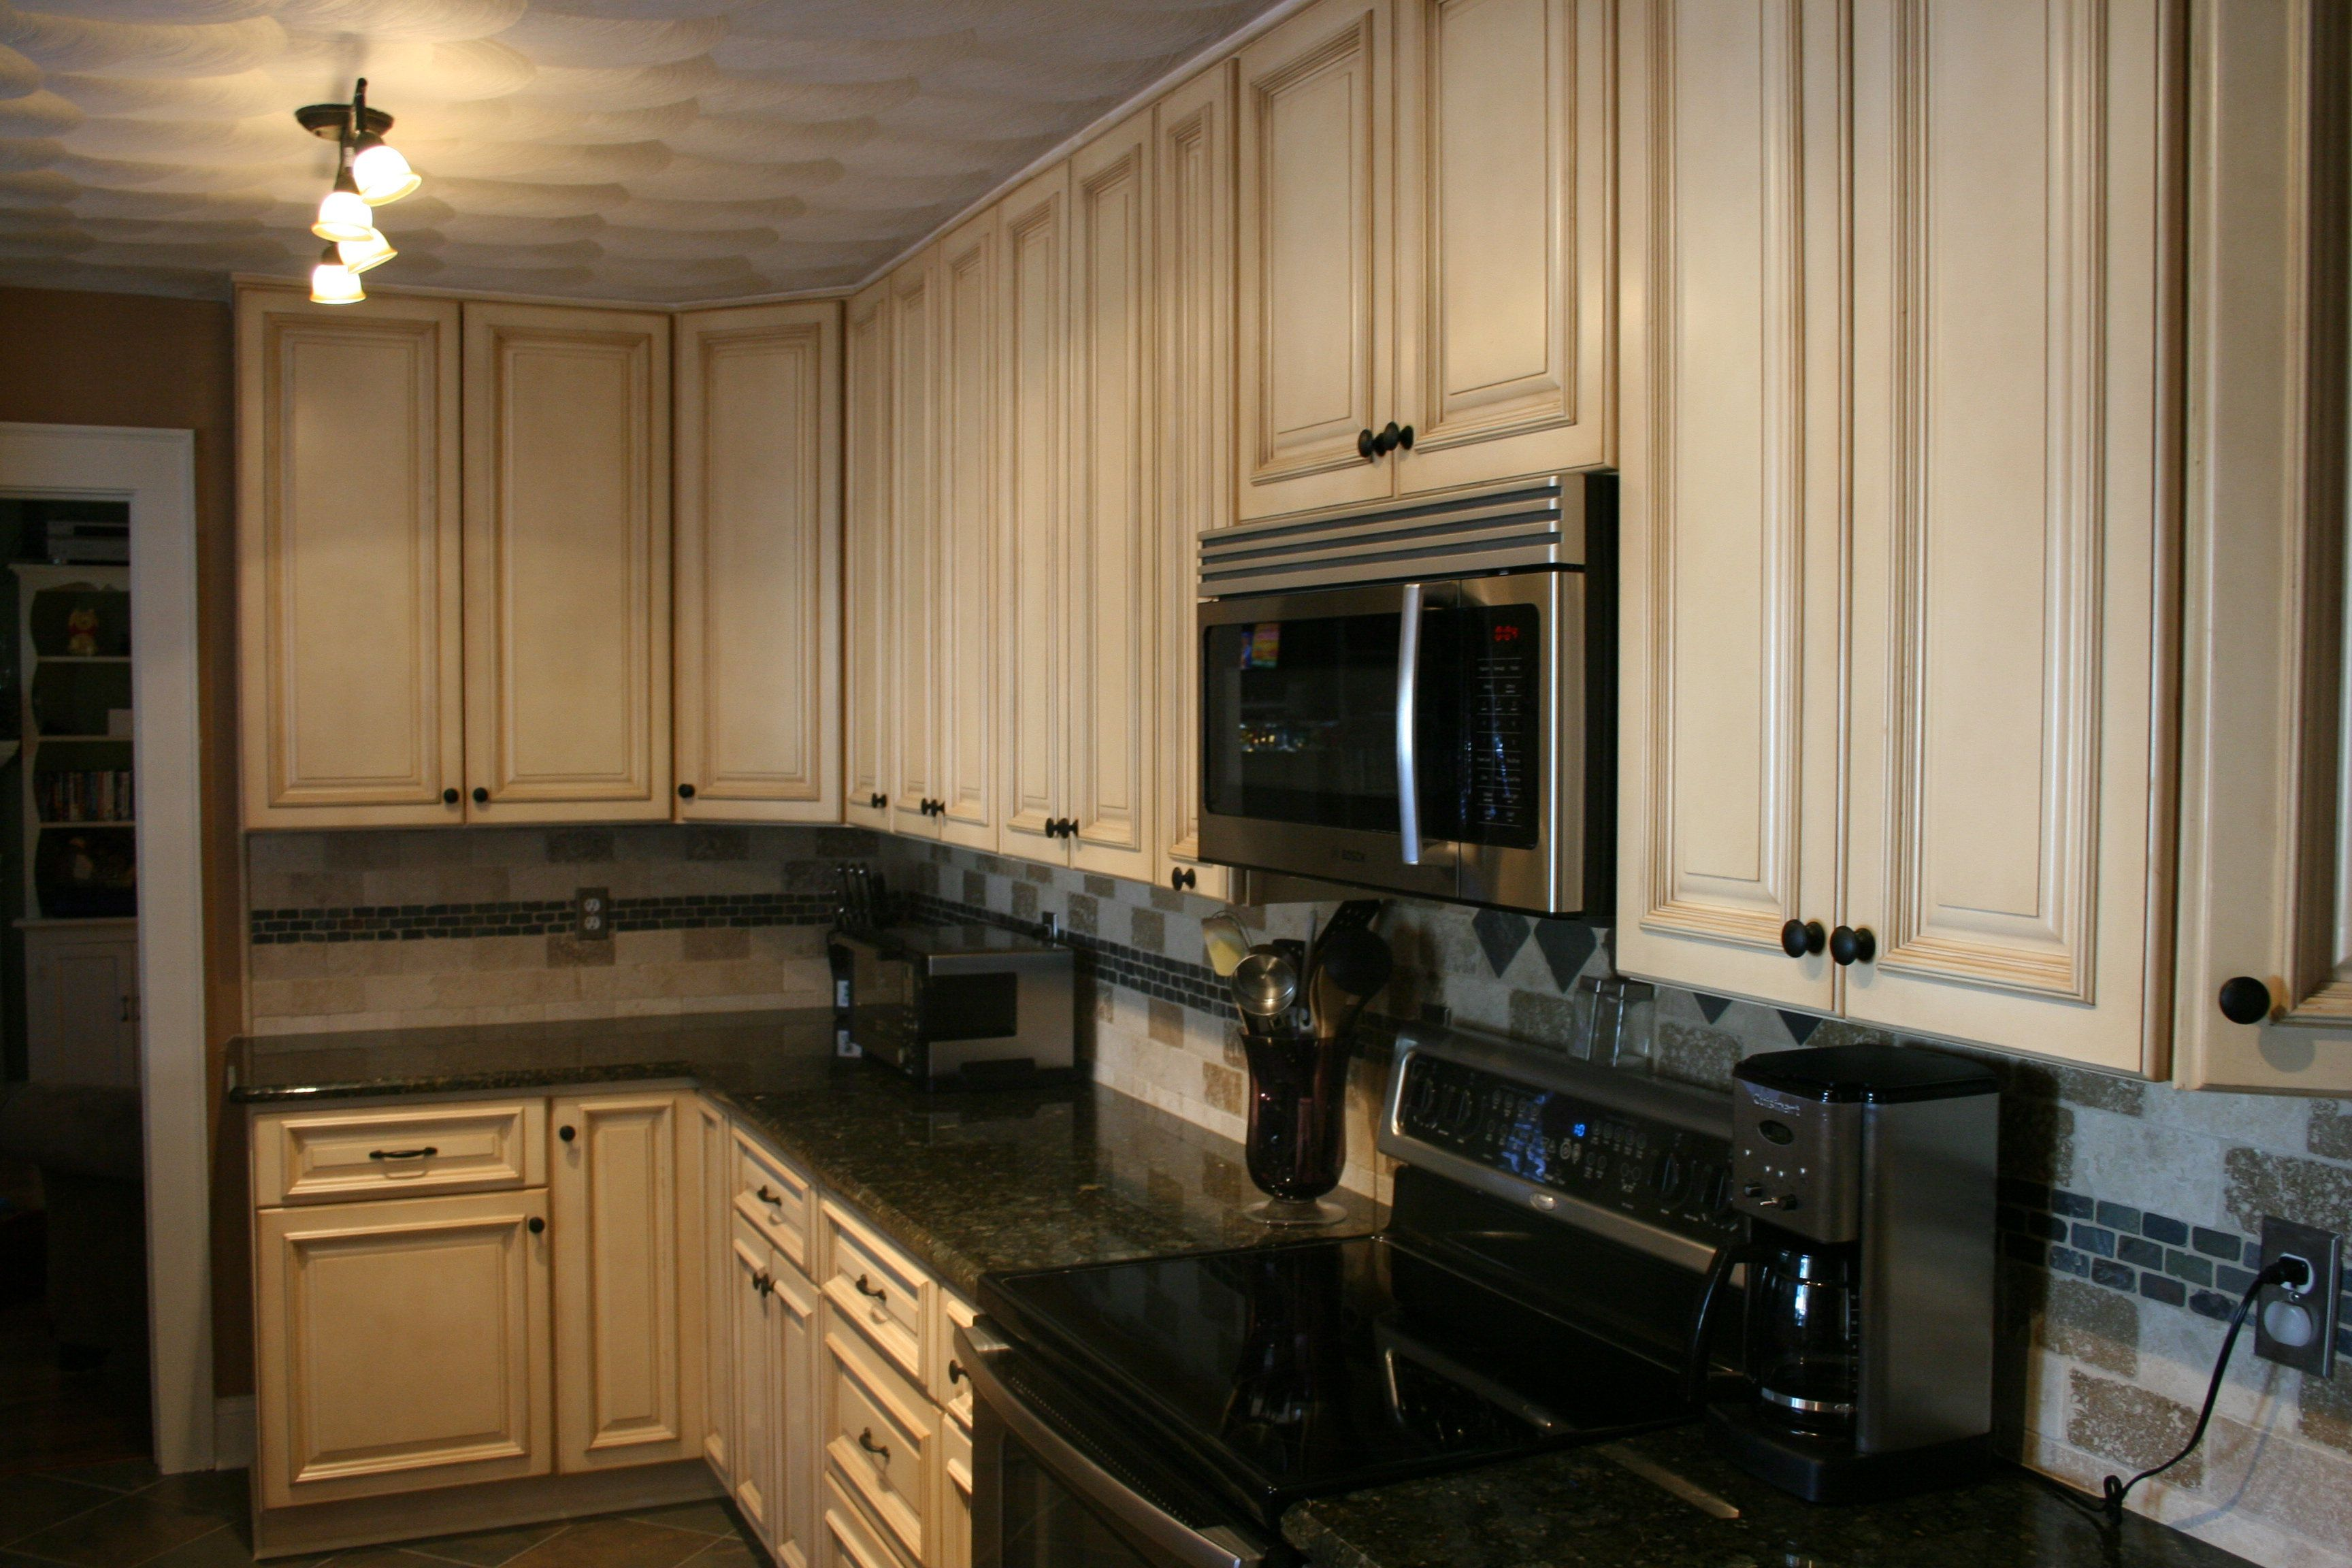 Antique White Country Kitchen antique grey kitchen cabinets best 20+ antique kitchen cabinets